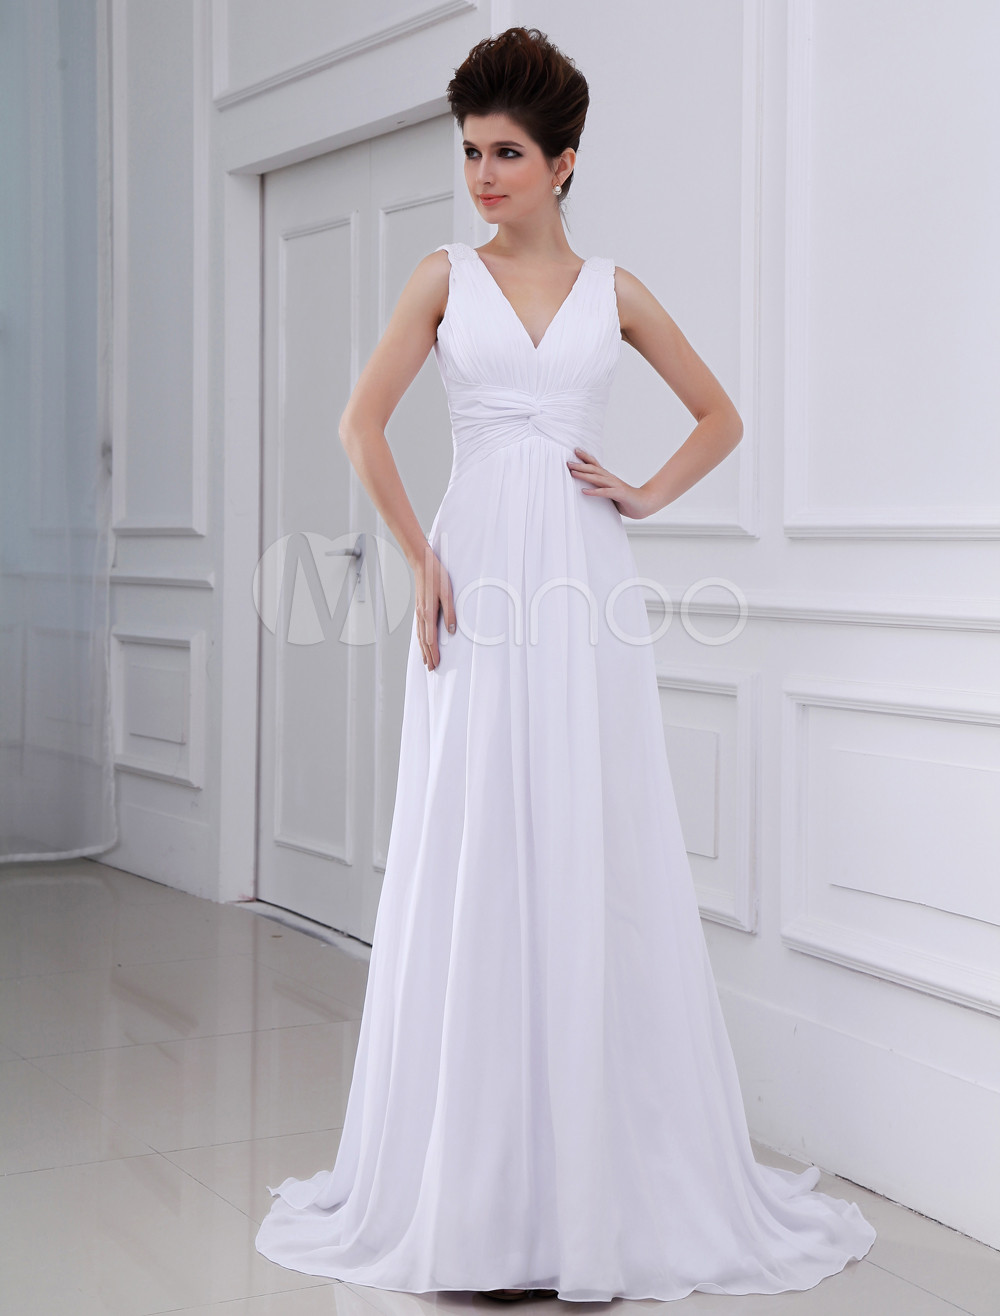 f672f8ea433a Elegant Sheath V-Neck Empire Waist Chiffon Wedding Dress For Bride -  Milanoo.com